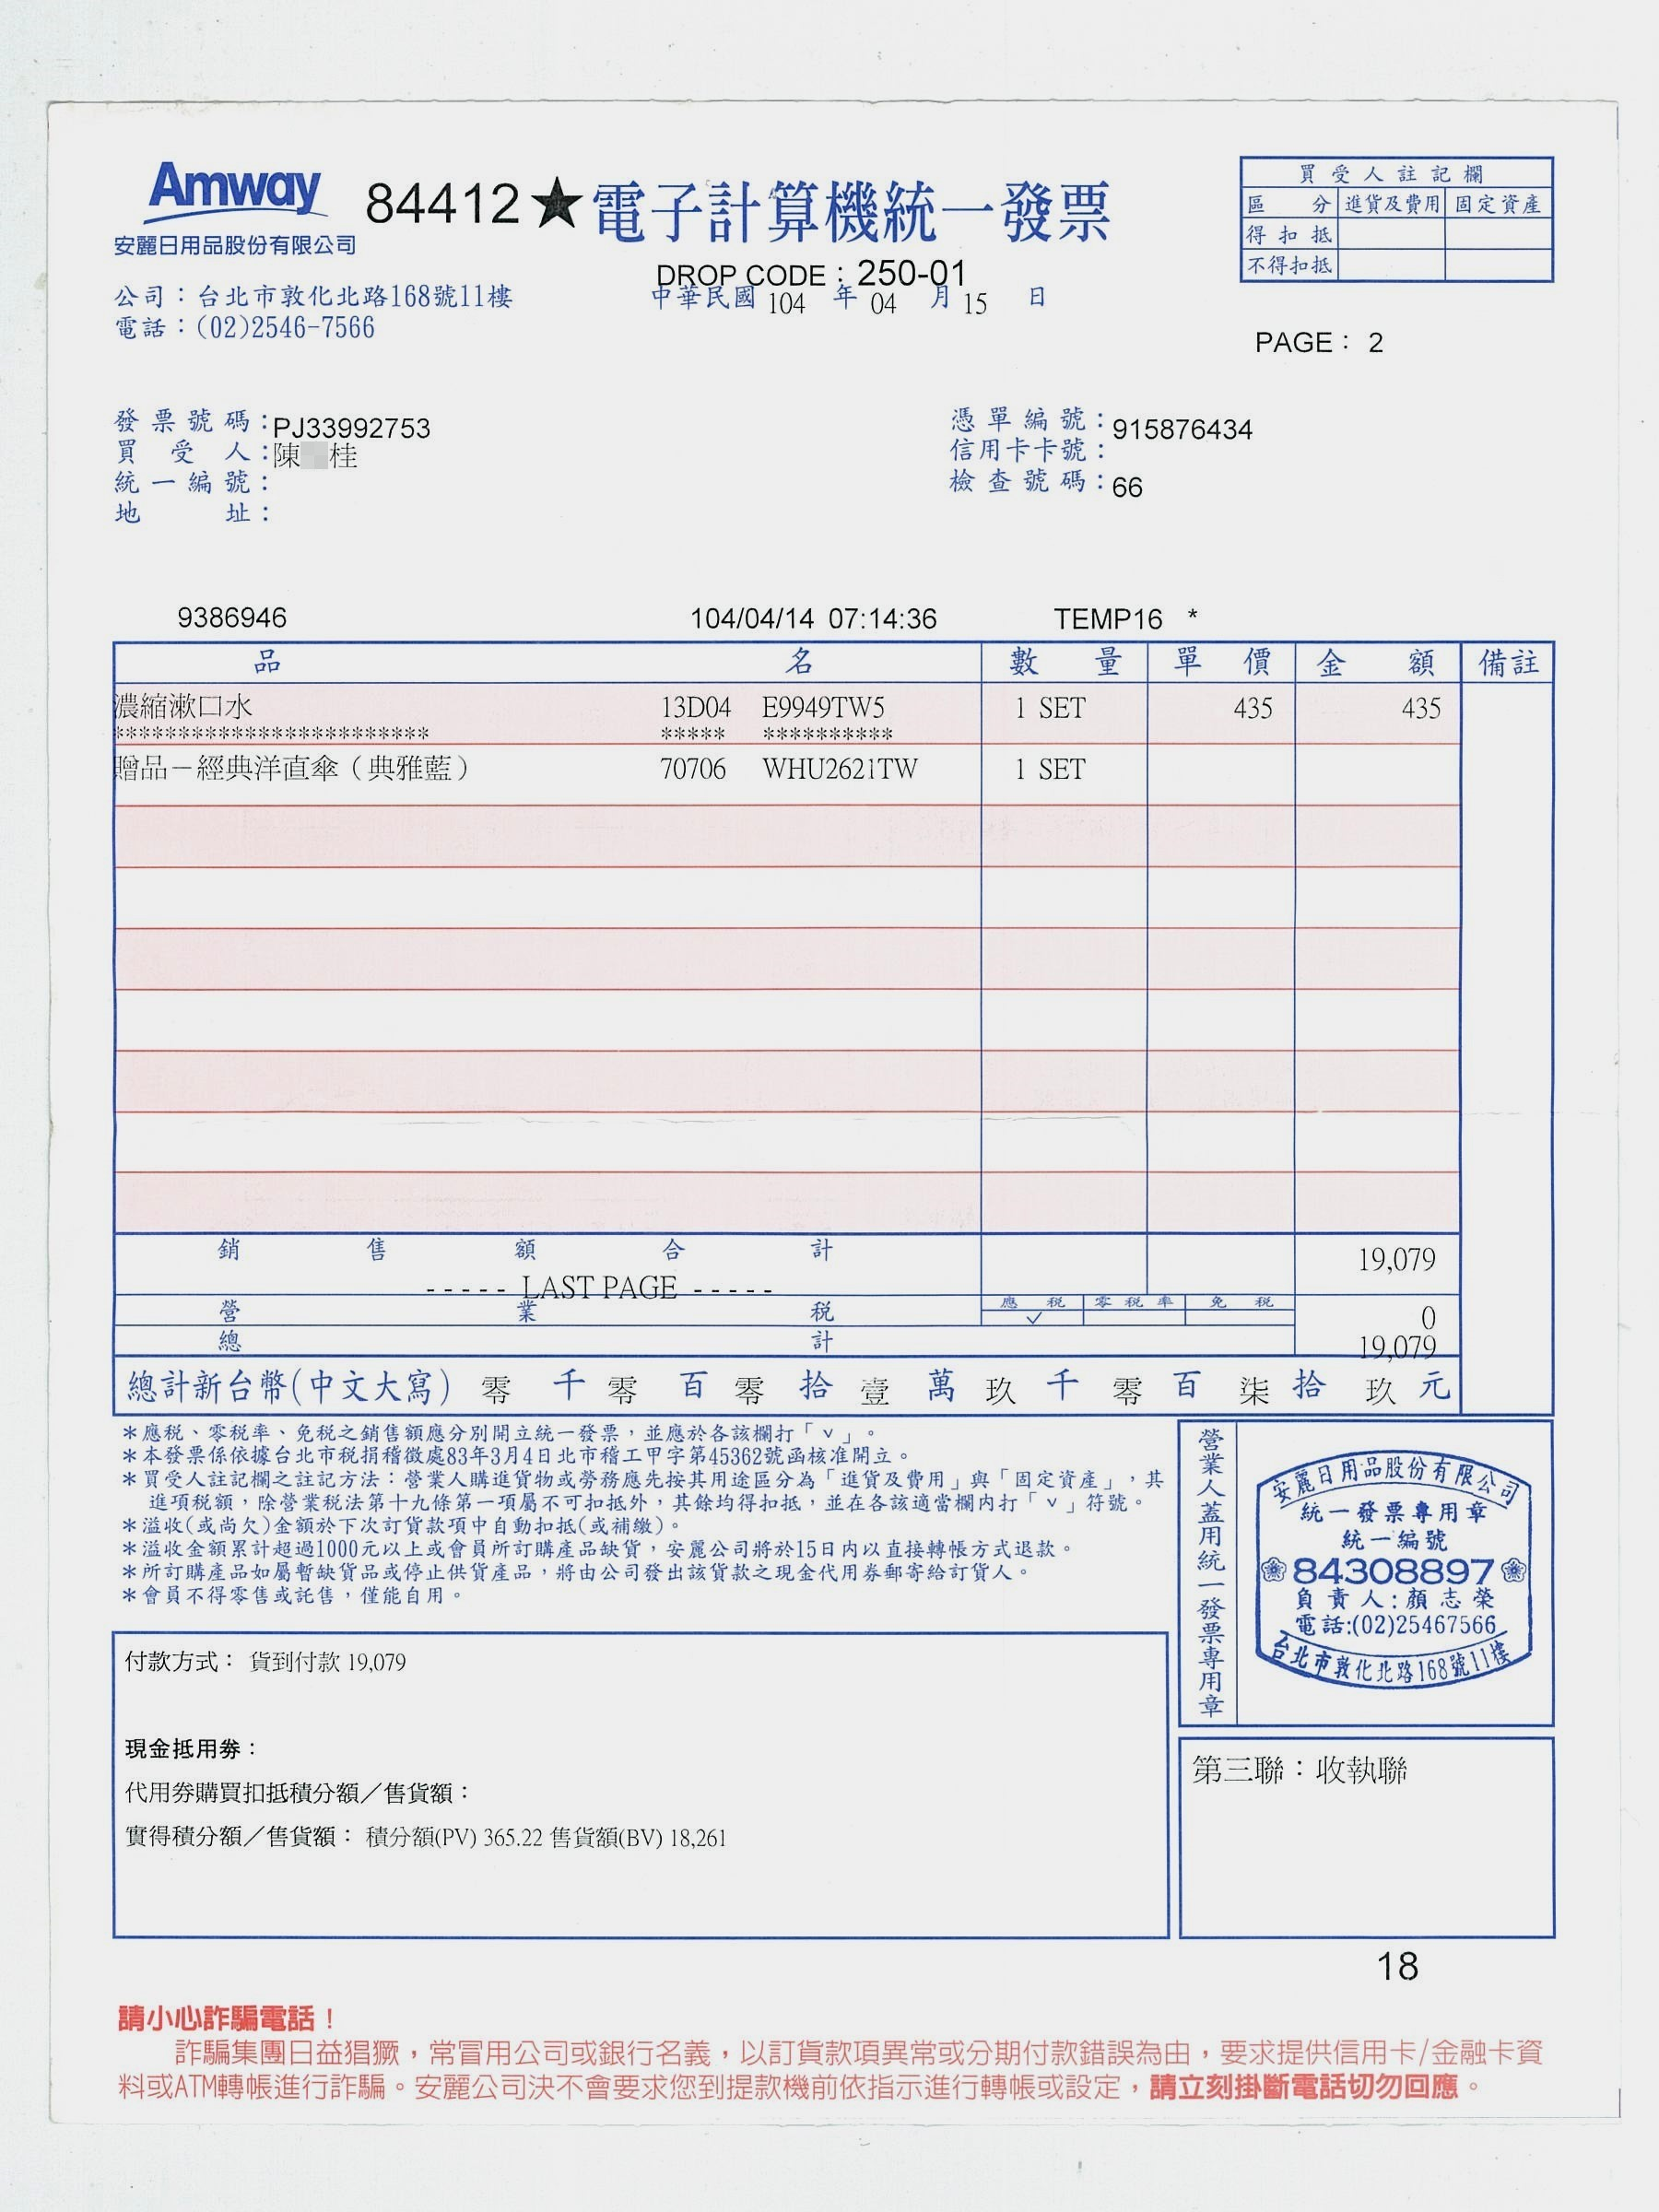 FileAmway Taiwan Uniform Invoice Jpg Wikimedia Commons - Invoice jpg